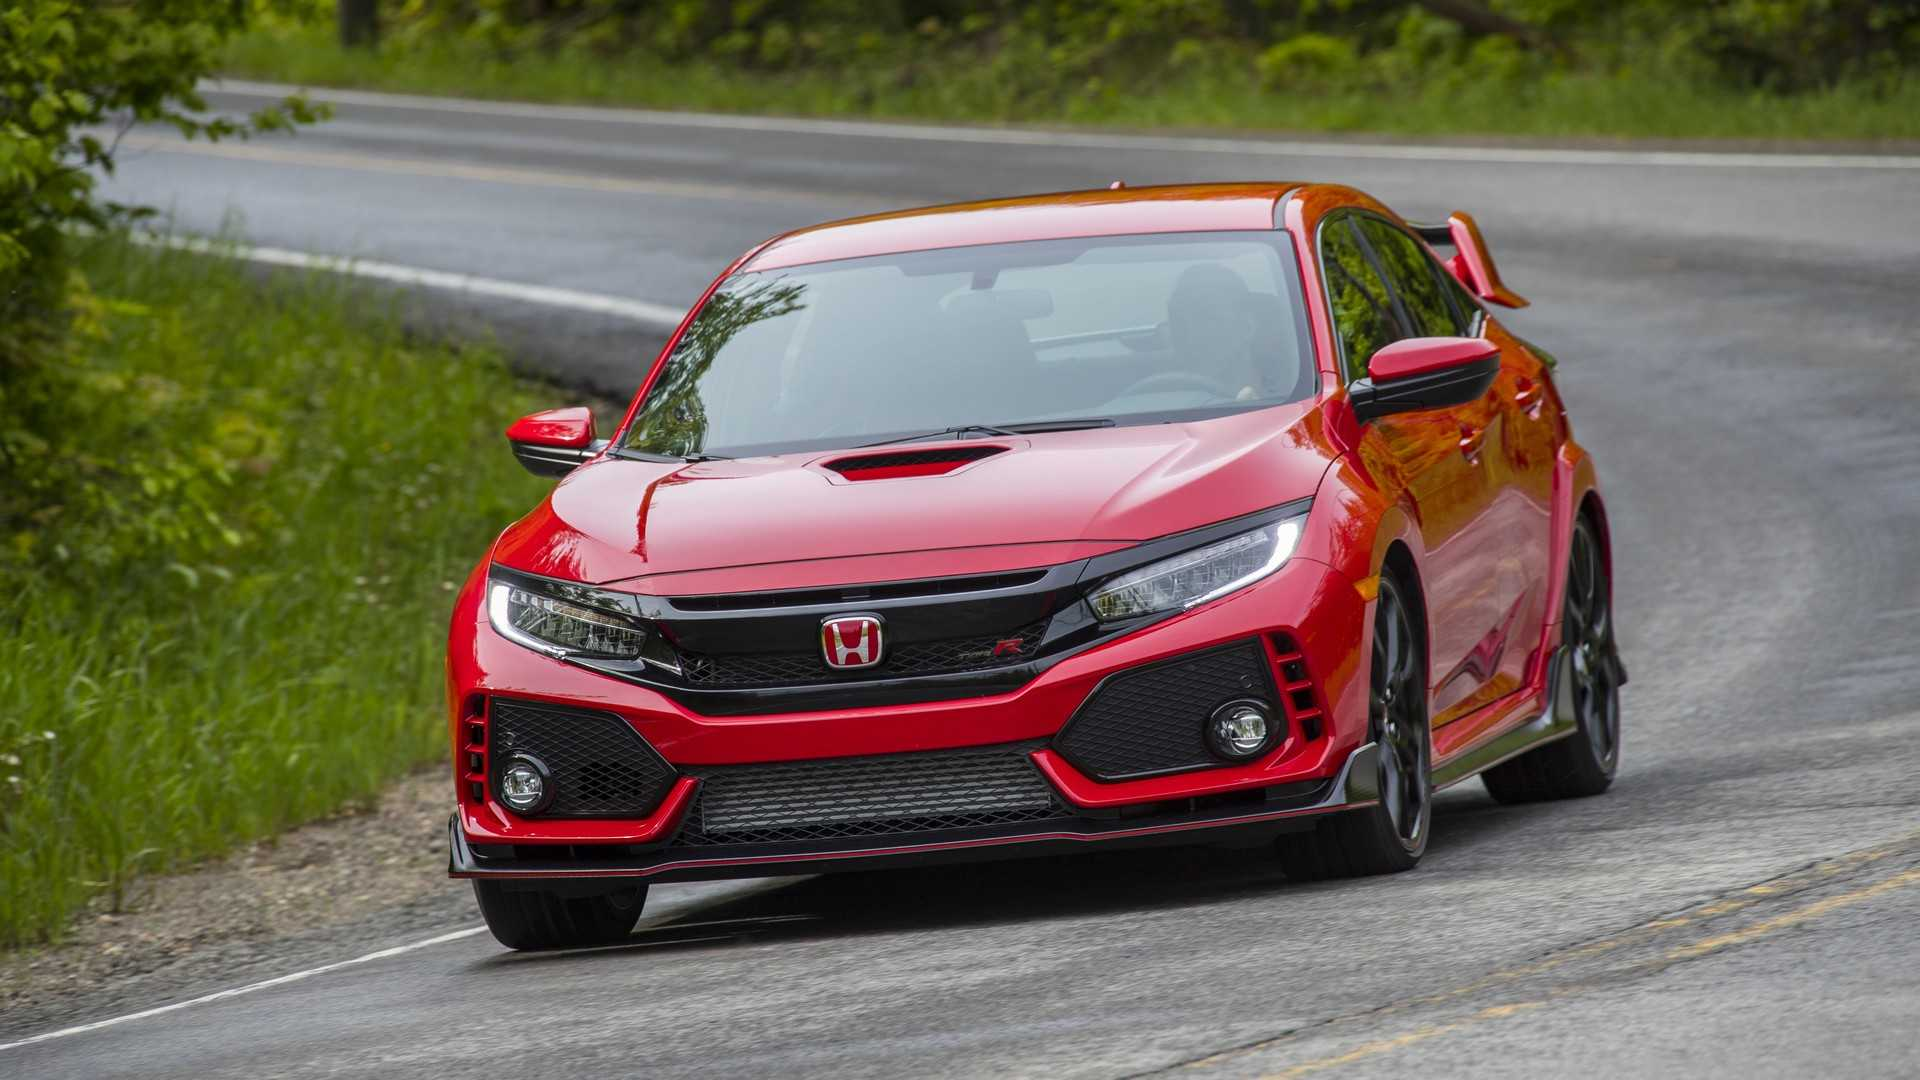 93 The Best 2019 Honda Civic Si Type R Redesign